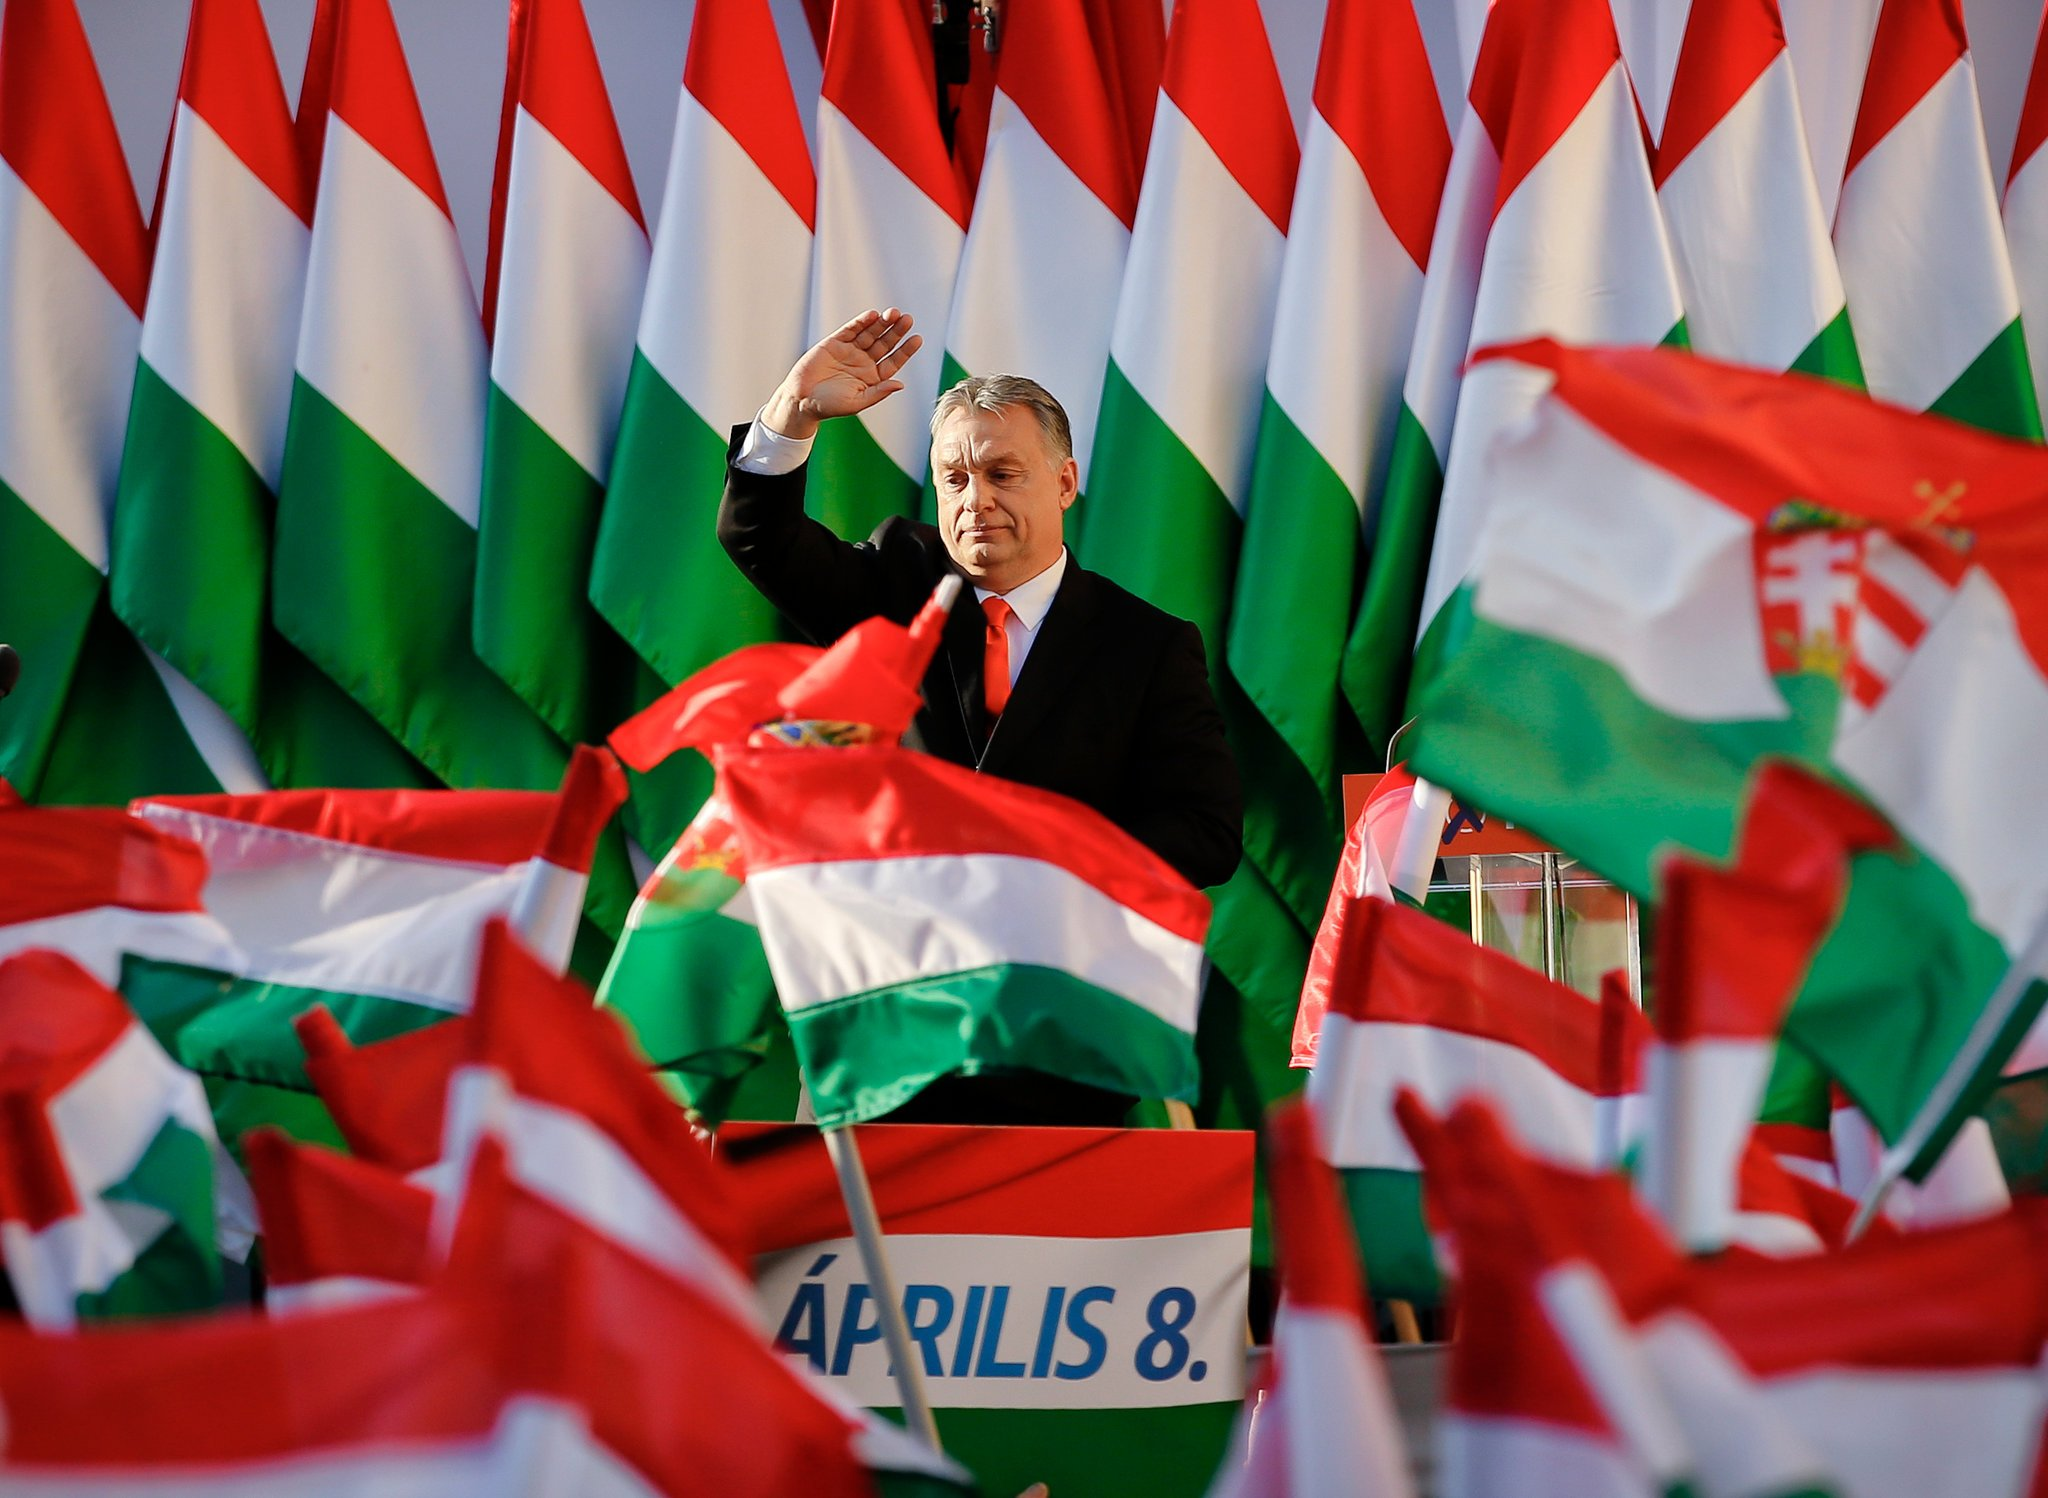 As Poland and Hungary Flout Democratic Values, Europe Eyes the Aid Spigot